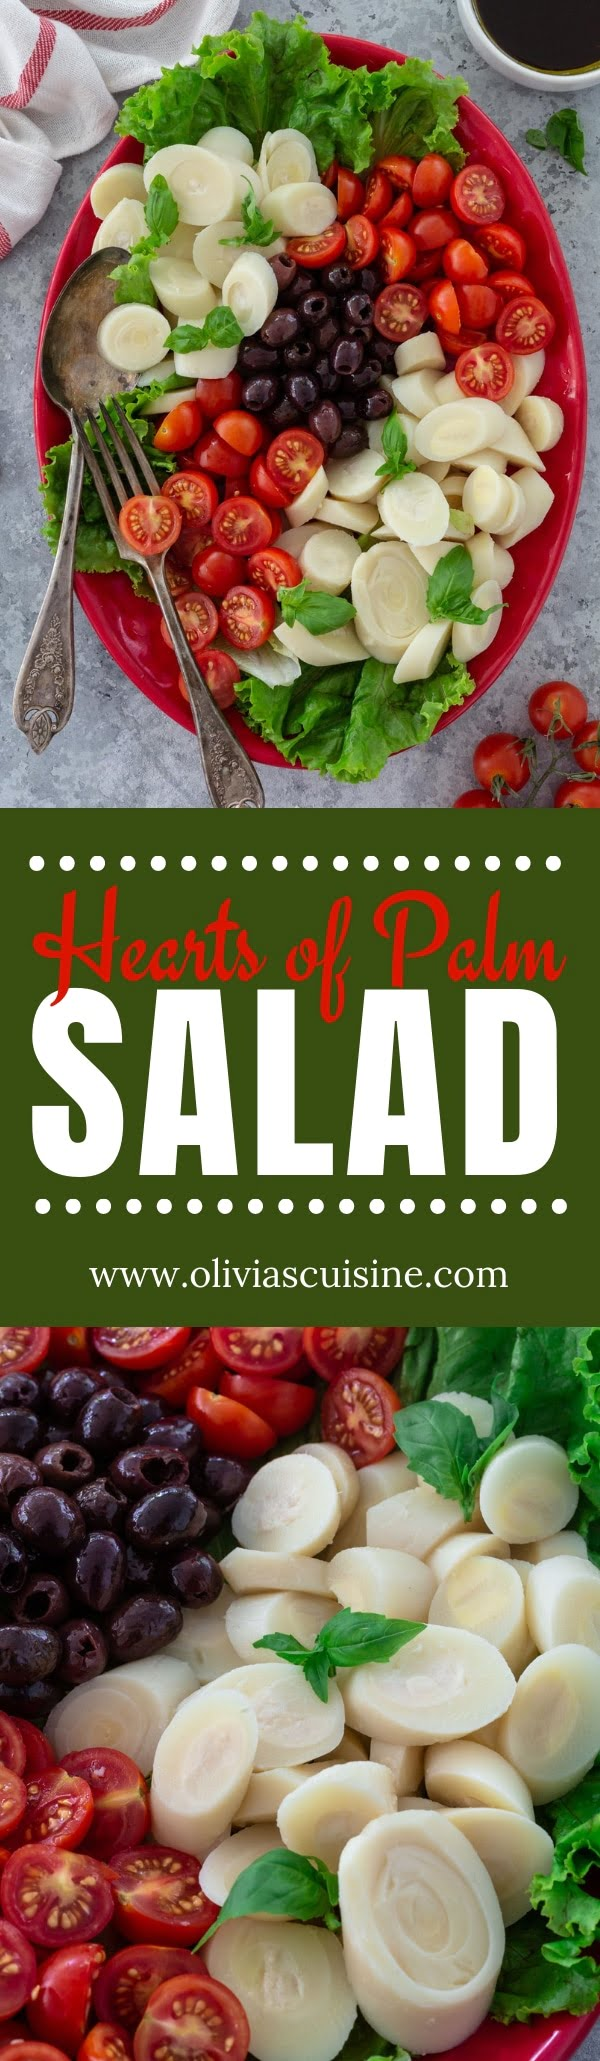 Hearts of Palm Salad with Cherry Tomatoes and Olives | www.oliviascuisine.com | This quick and simple Hearts of Palm Salad will be a hit at your summer table! Serve it as an appetizer, a side dish for grilled meat or as a light meal, topped with protein. (Recipe and food photography by @oliviascuisine.) #heartsofpalm #salad #brazilian #brazil #lowcarb